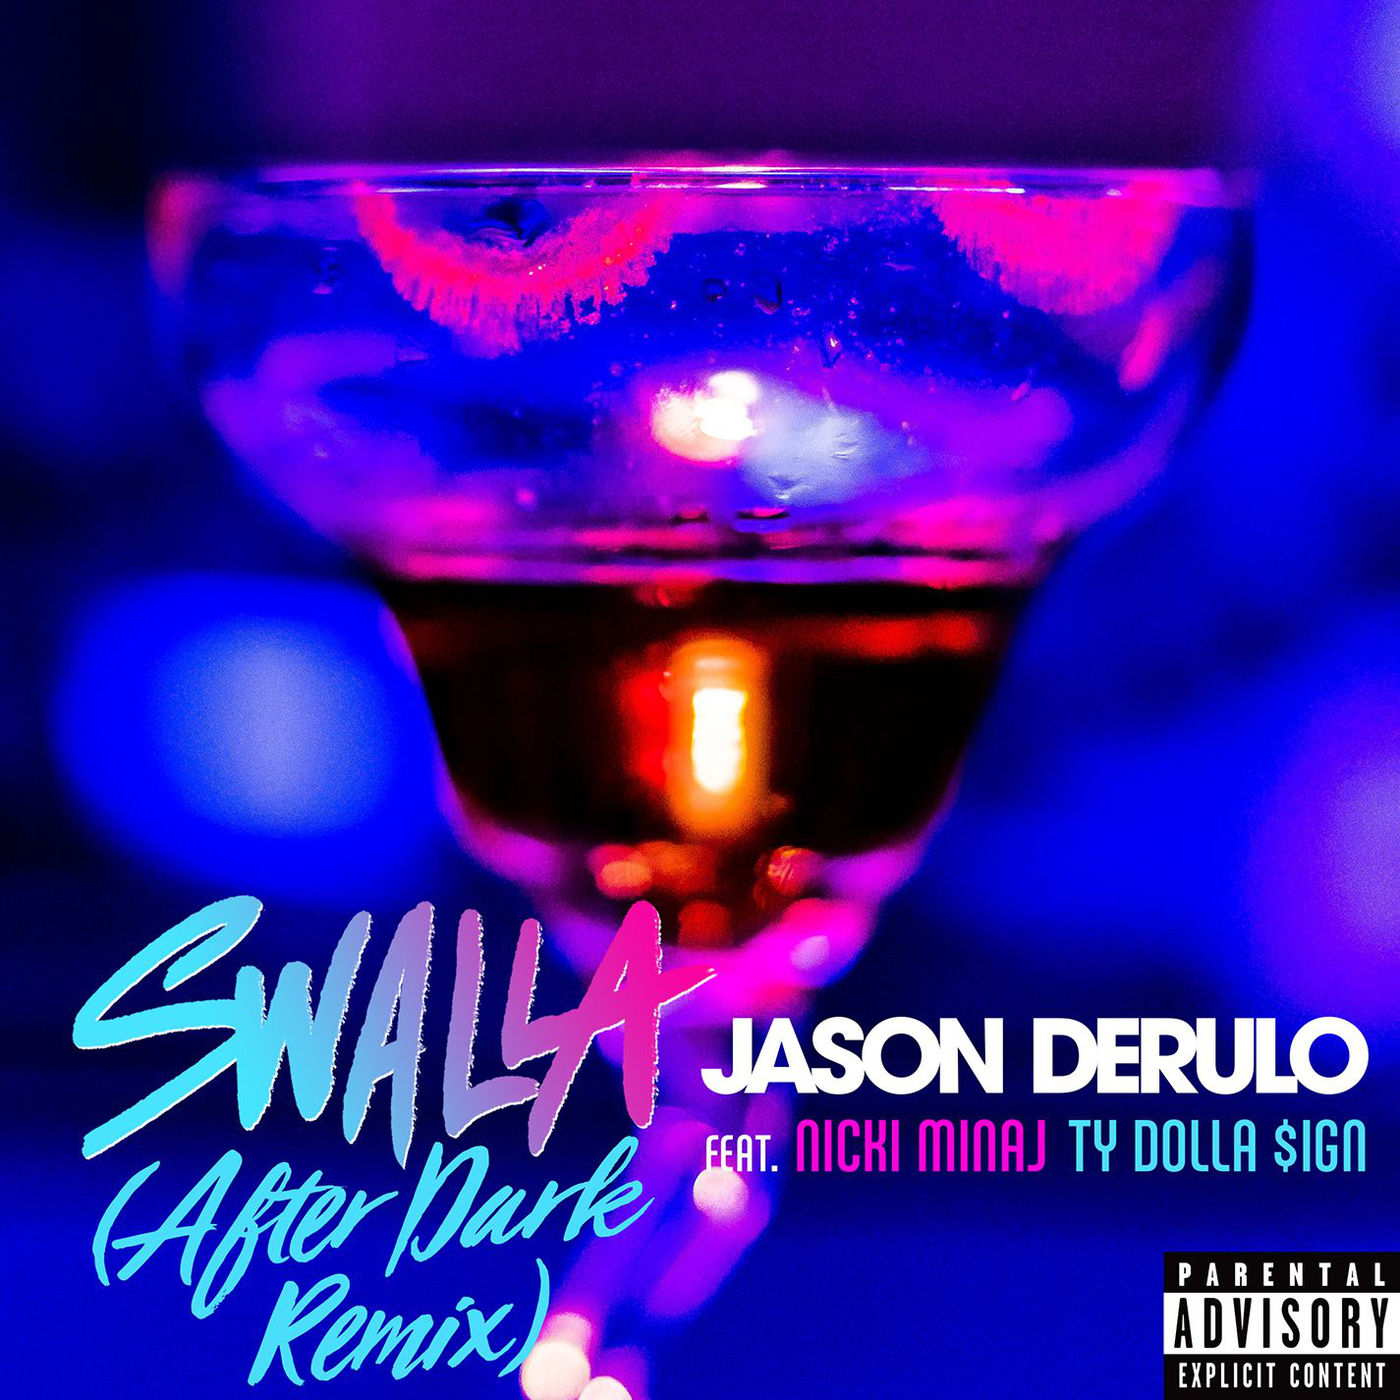 Jason Derulo - Swalla (feat. Nicki Minaj & Ty Dolla $ign) [After Dark Remix] - Single Cover